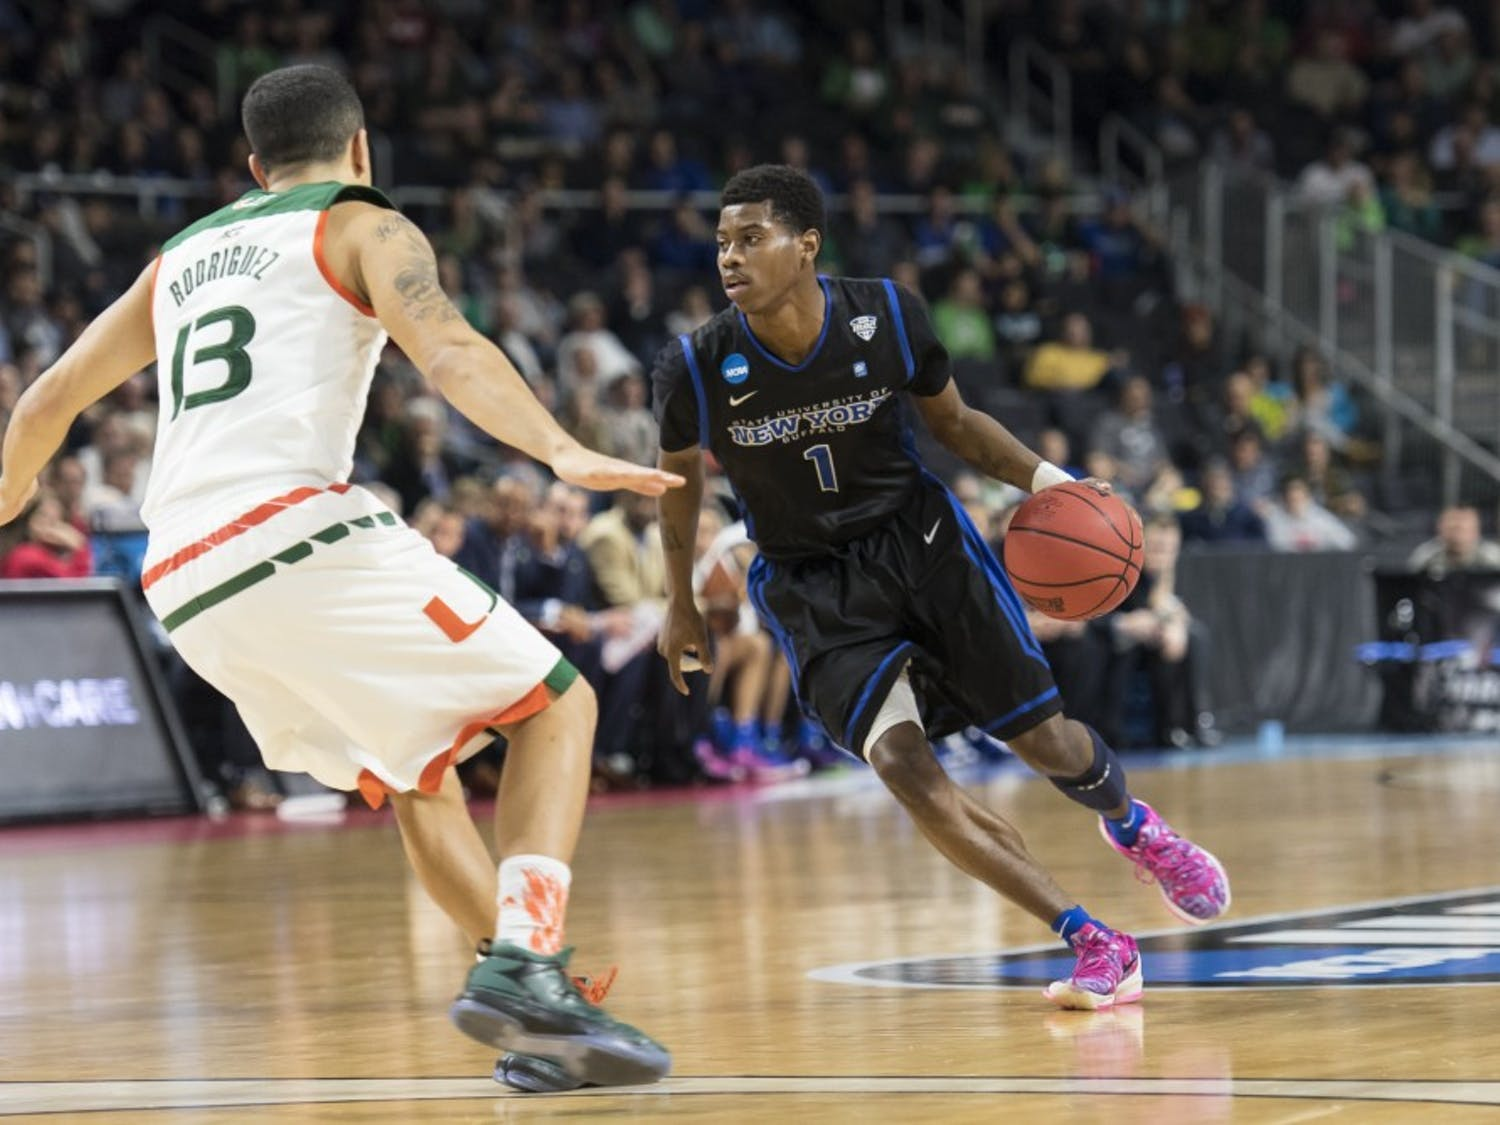 The Buffalo men's basketball team fell 79-72 to No. 3 seed Miami in the NCAA Tournament in Providence, Rhode Island Thursday night. It was Buffalo's second straight and second-everappearance at the big dance after an unexpected Mid-American Conference title run.